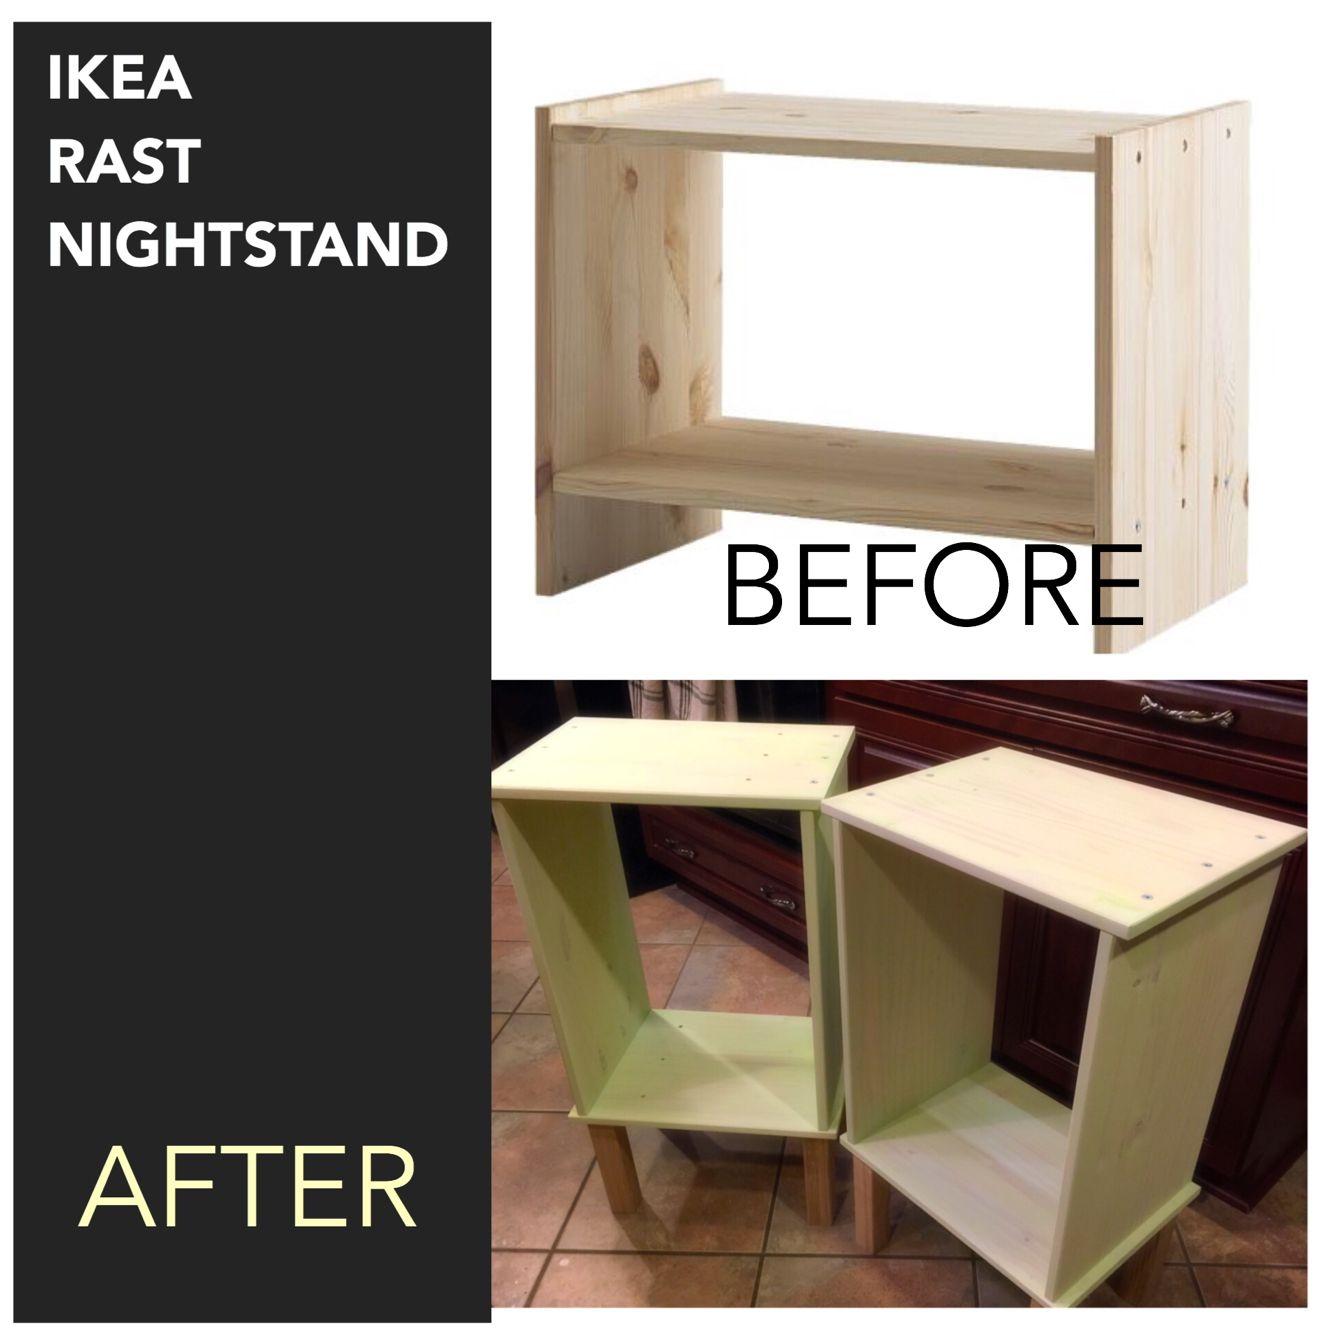 Diy overbed table - Ikea Rast Nightstand Hack Ikeahack Diy I Stained The Bare Wood With